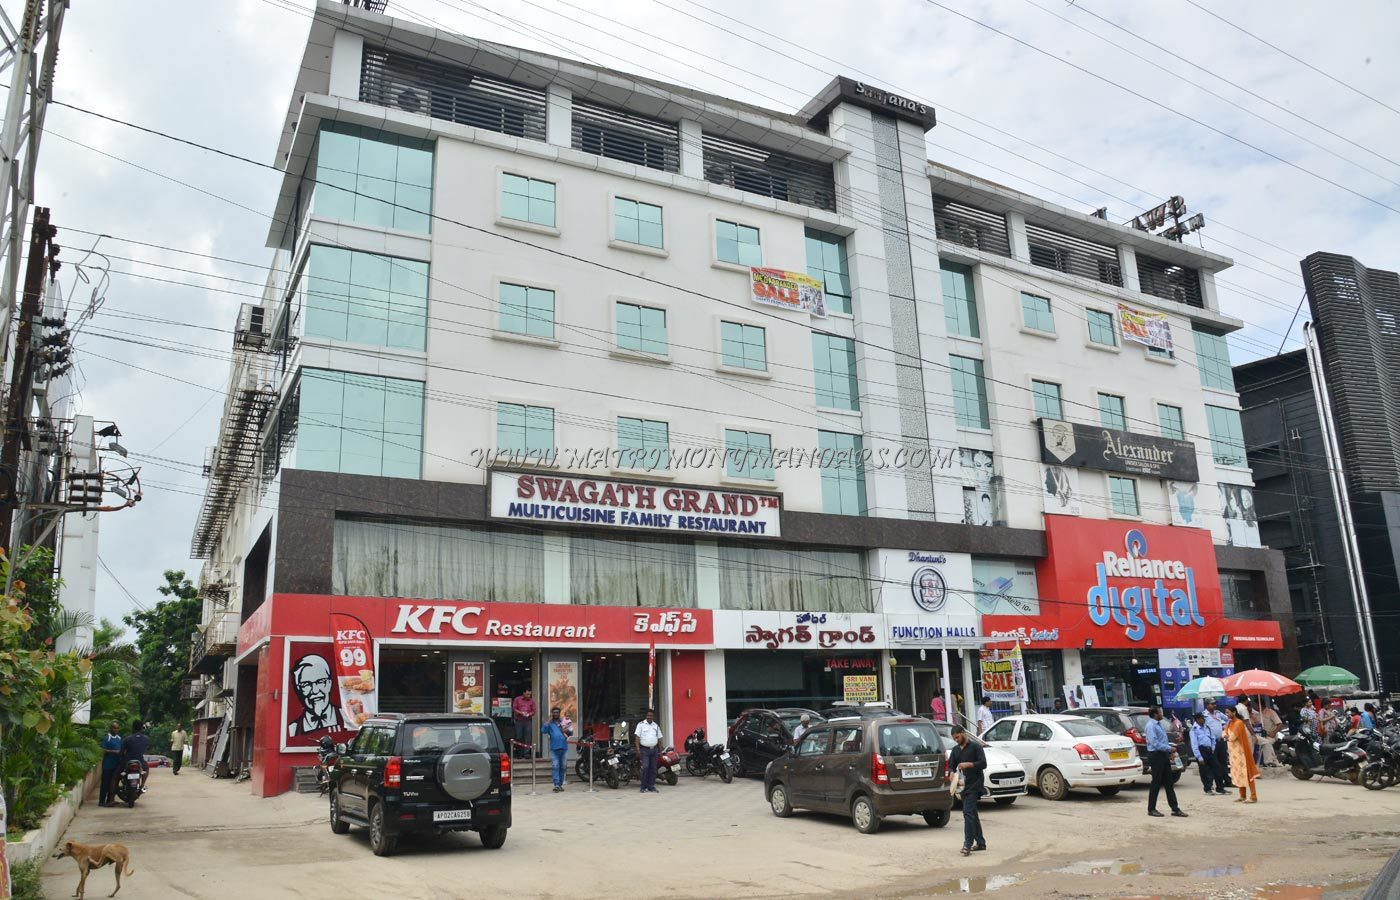 Find the availability of the Hotel Swagath Grand - Galaxy Hall (A/C) in Suchitra, Hyderabad and avail special offers